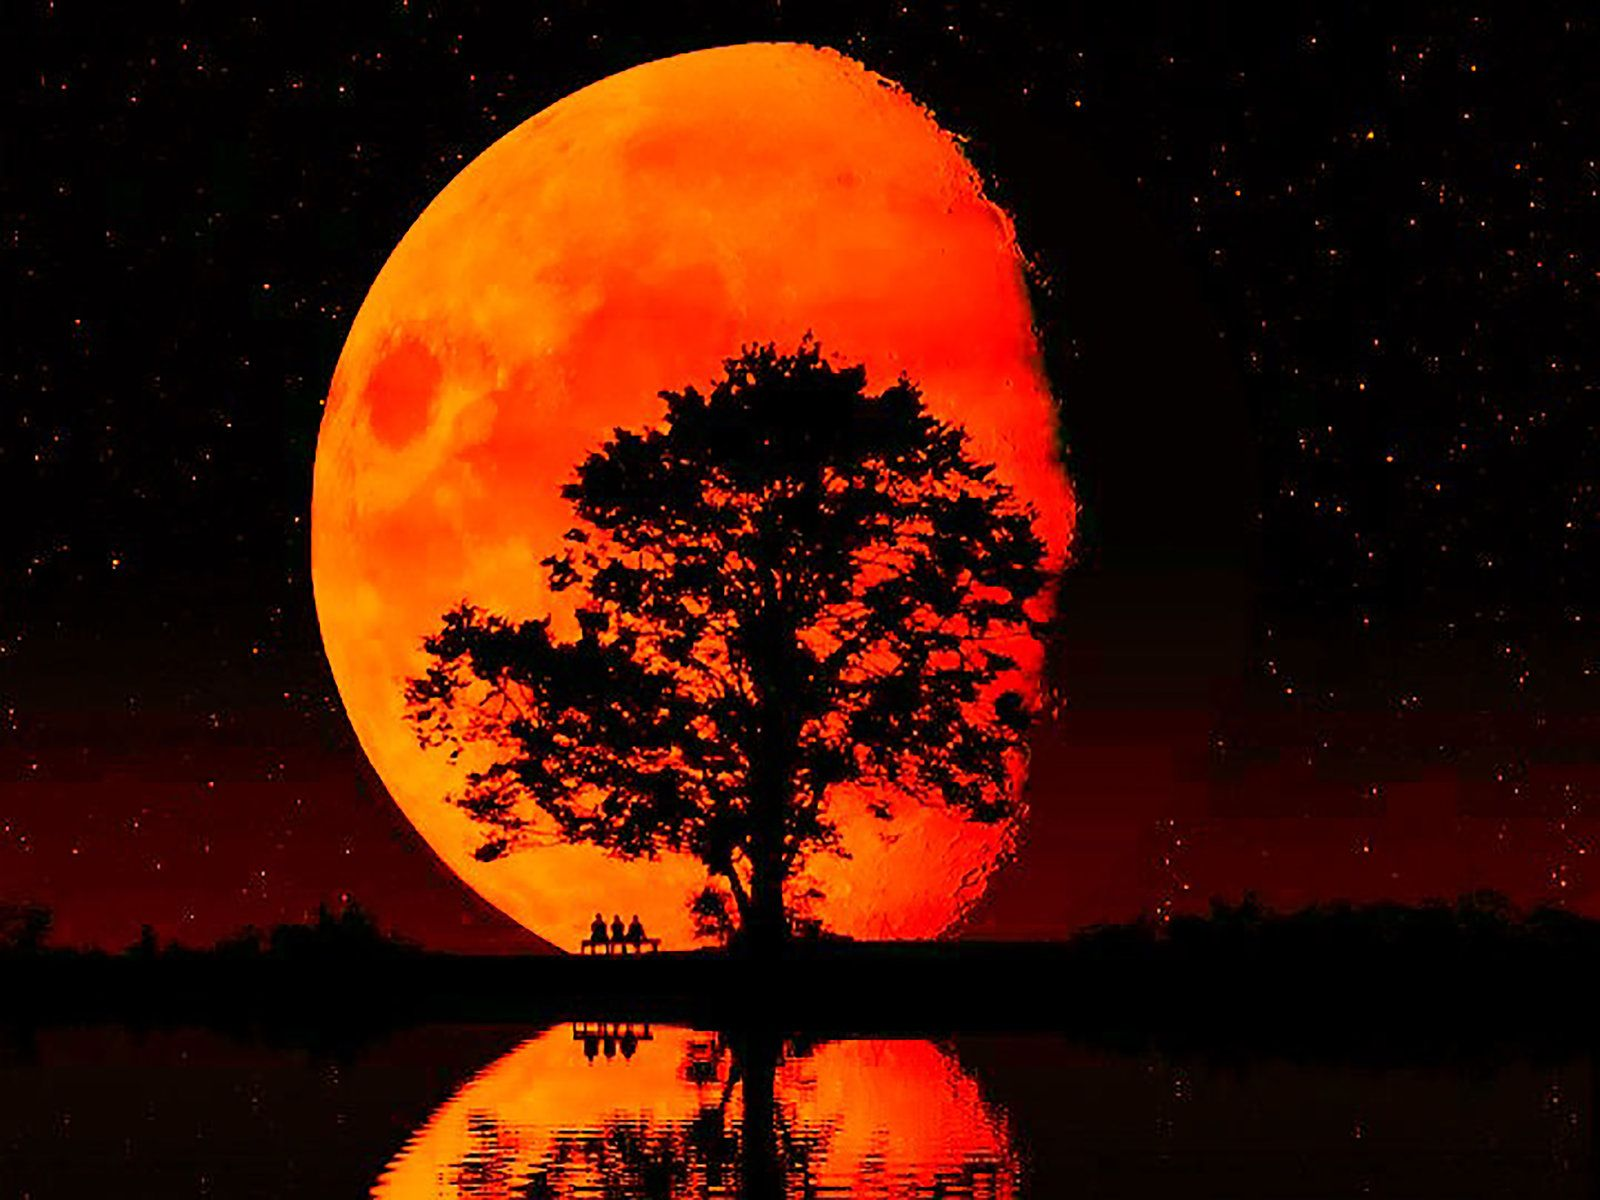 red moon wallpapers, red moon backgrounds